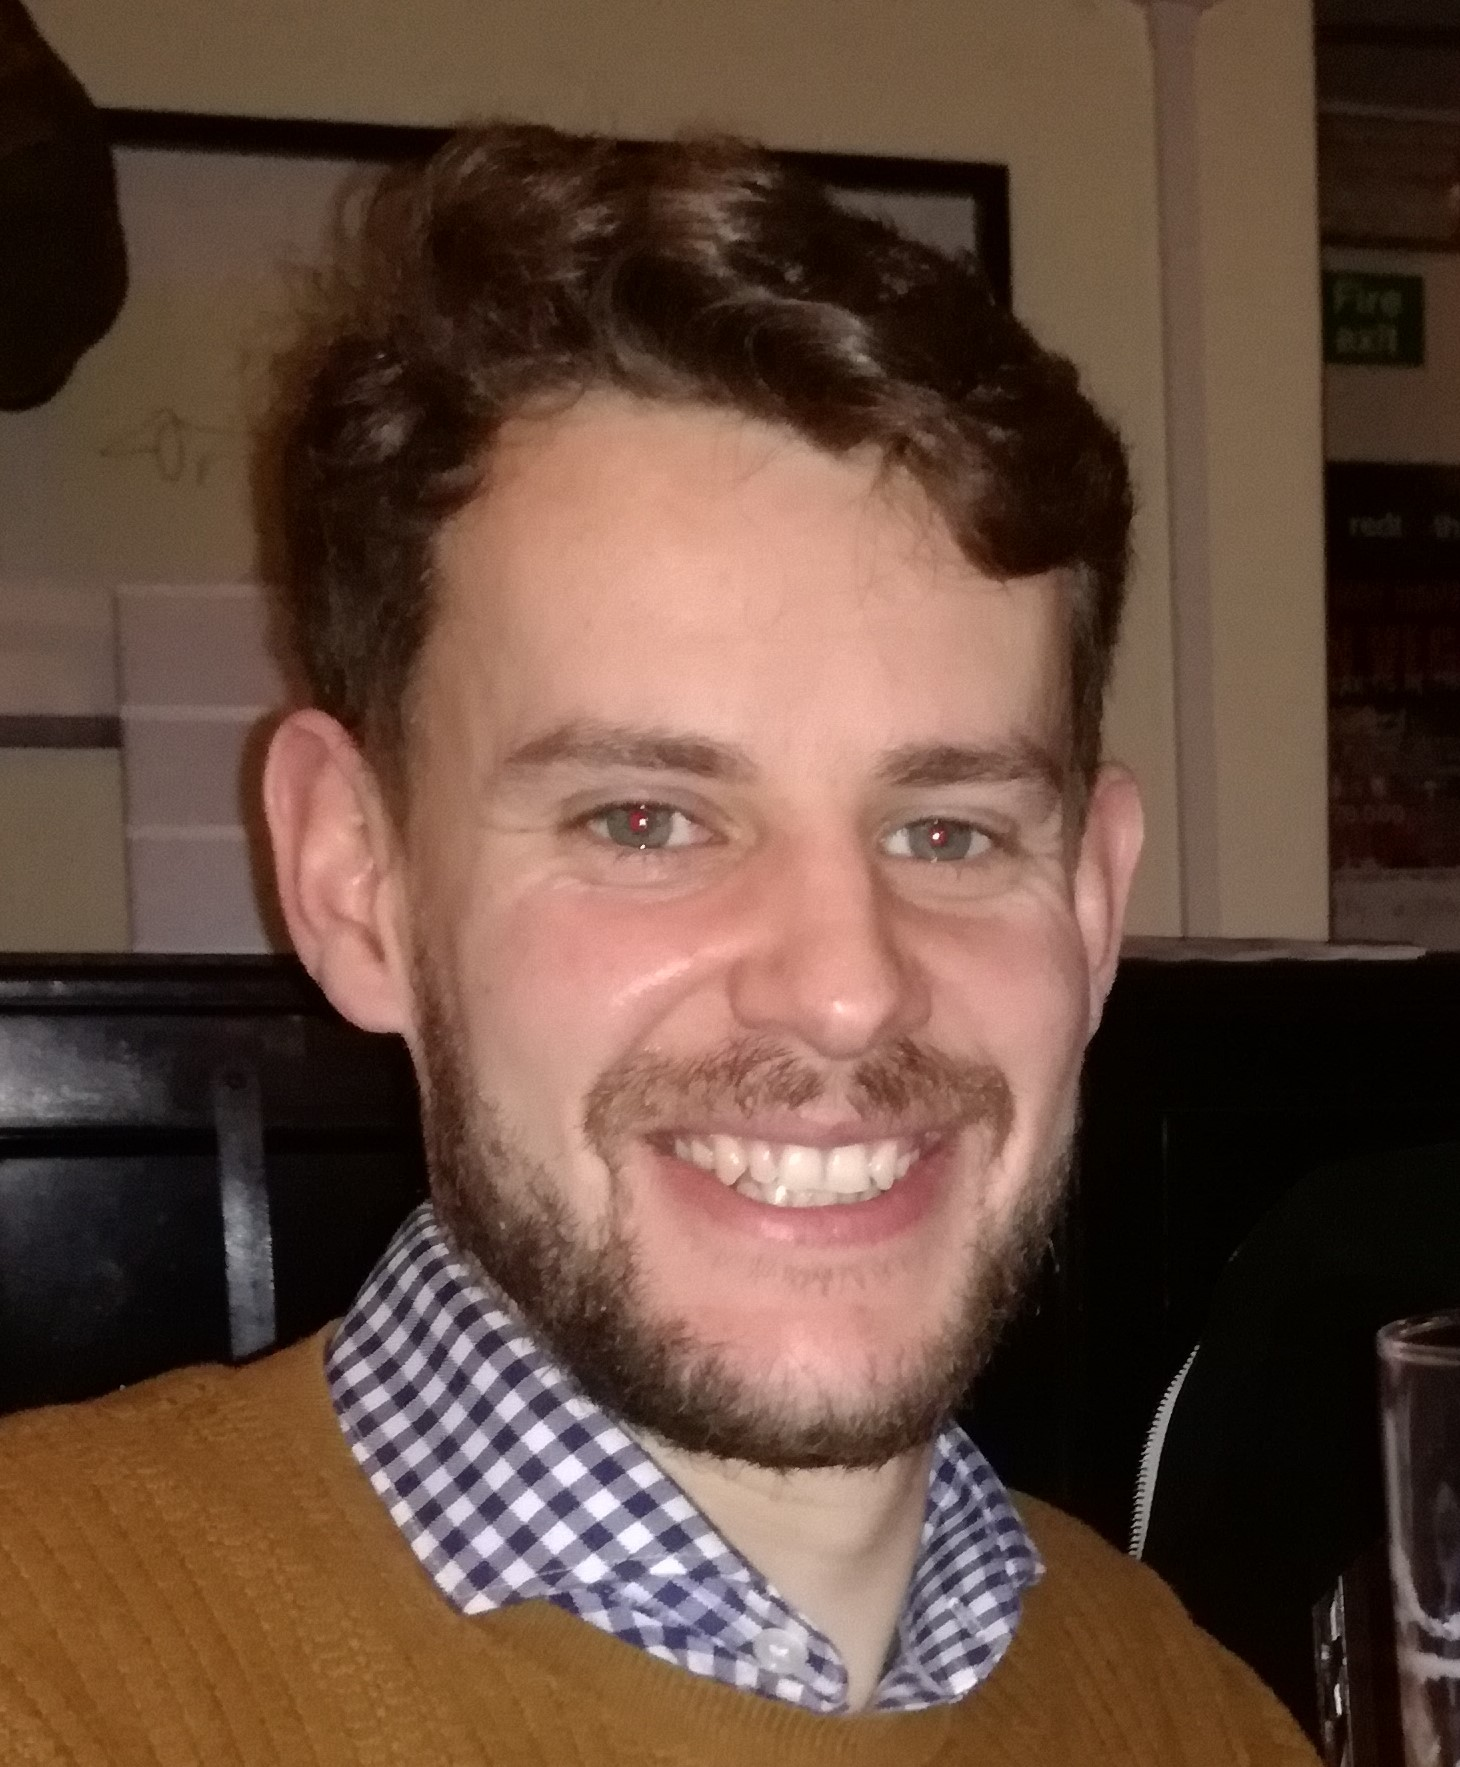 Cllr_Mark_Cory_celebrates_Pub_Business_Rate_Relief.jpg